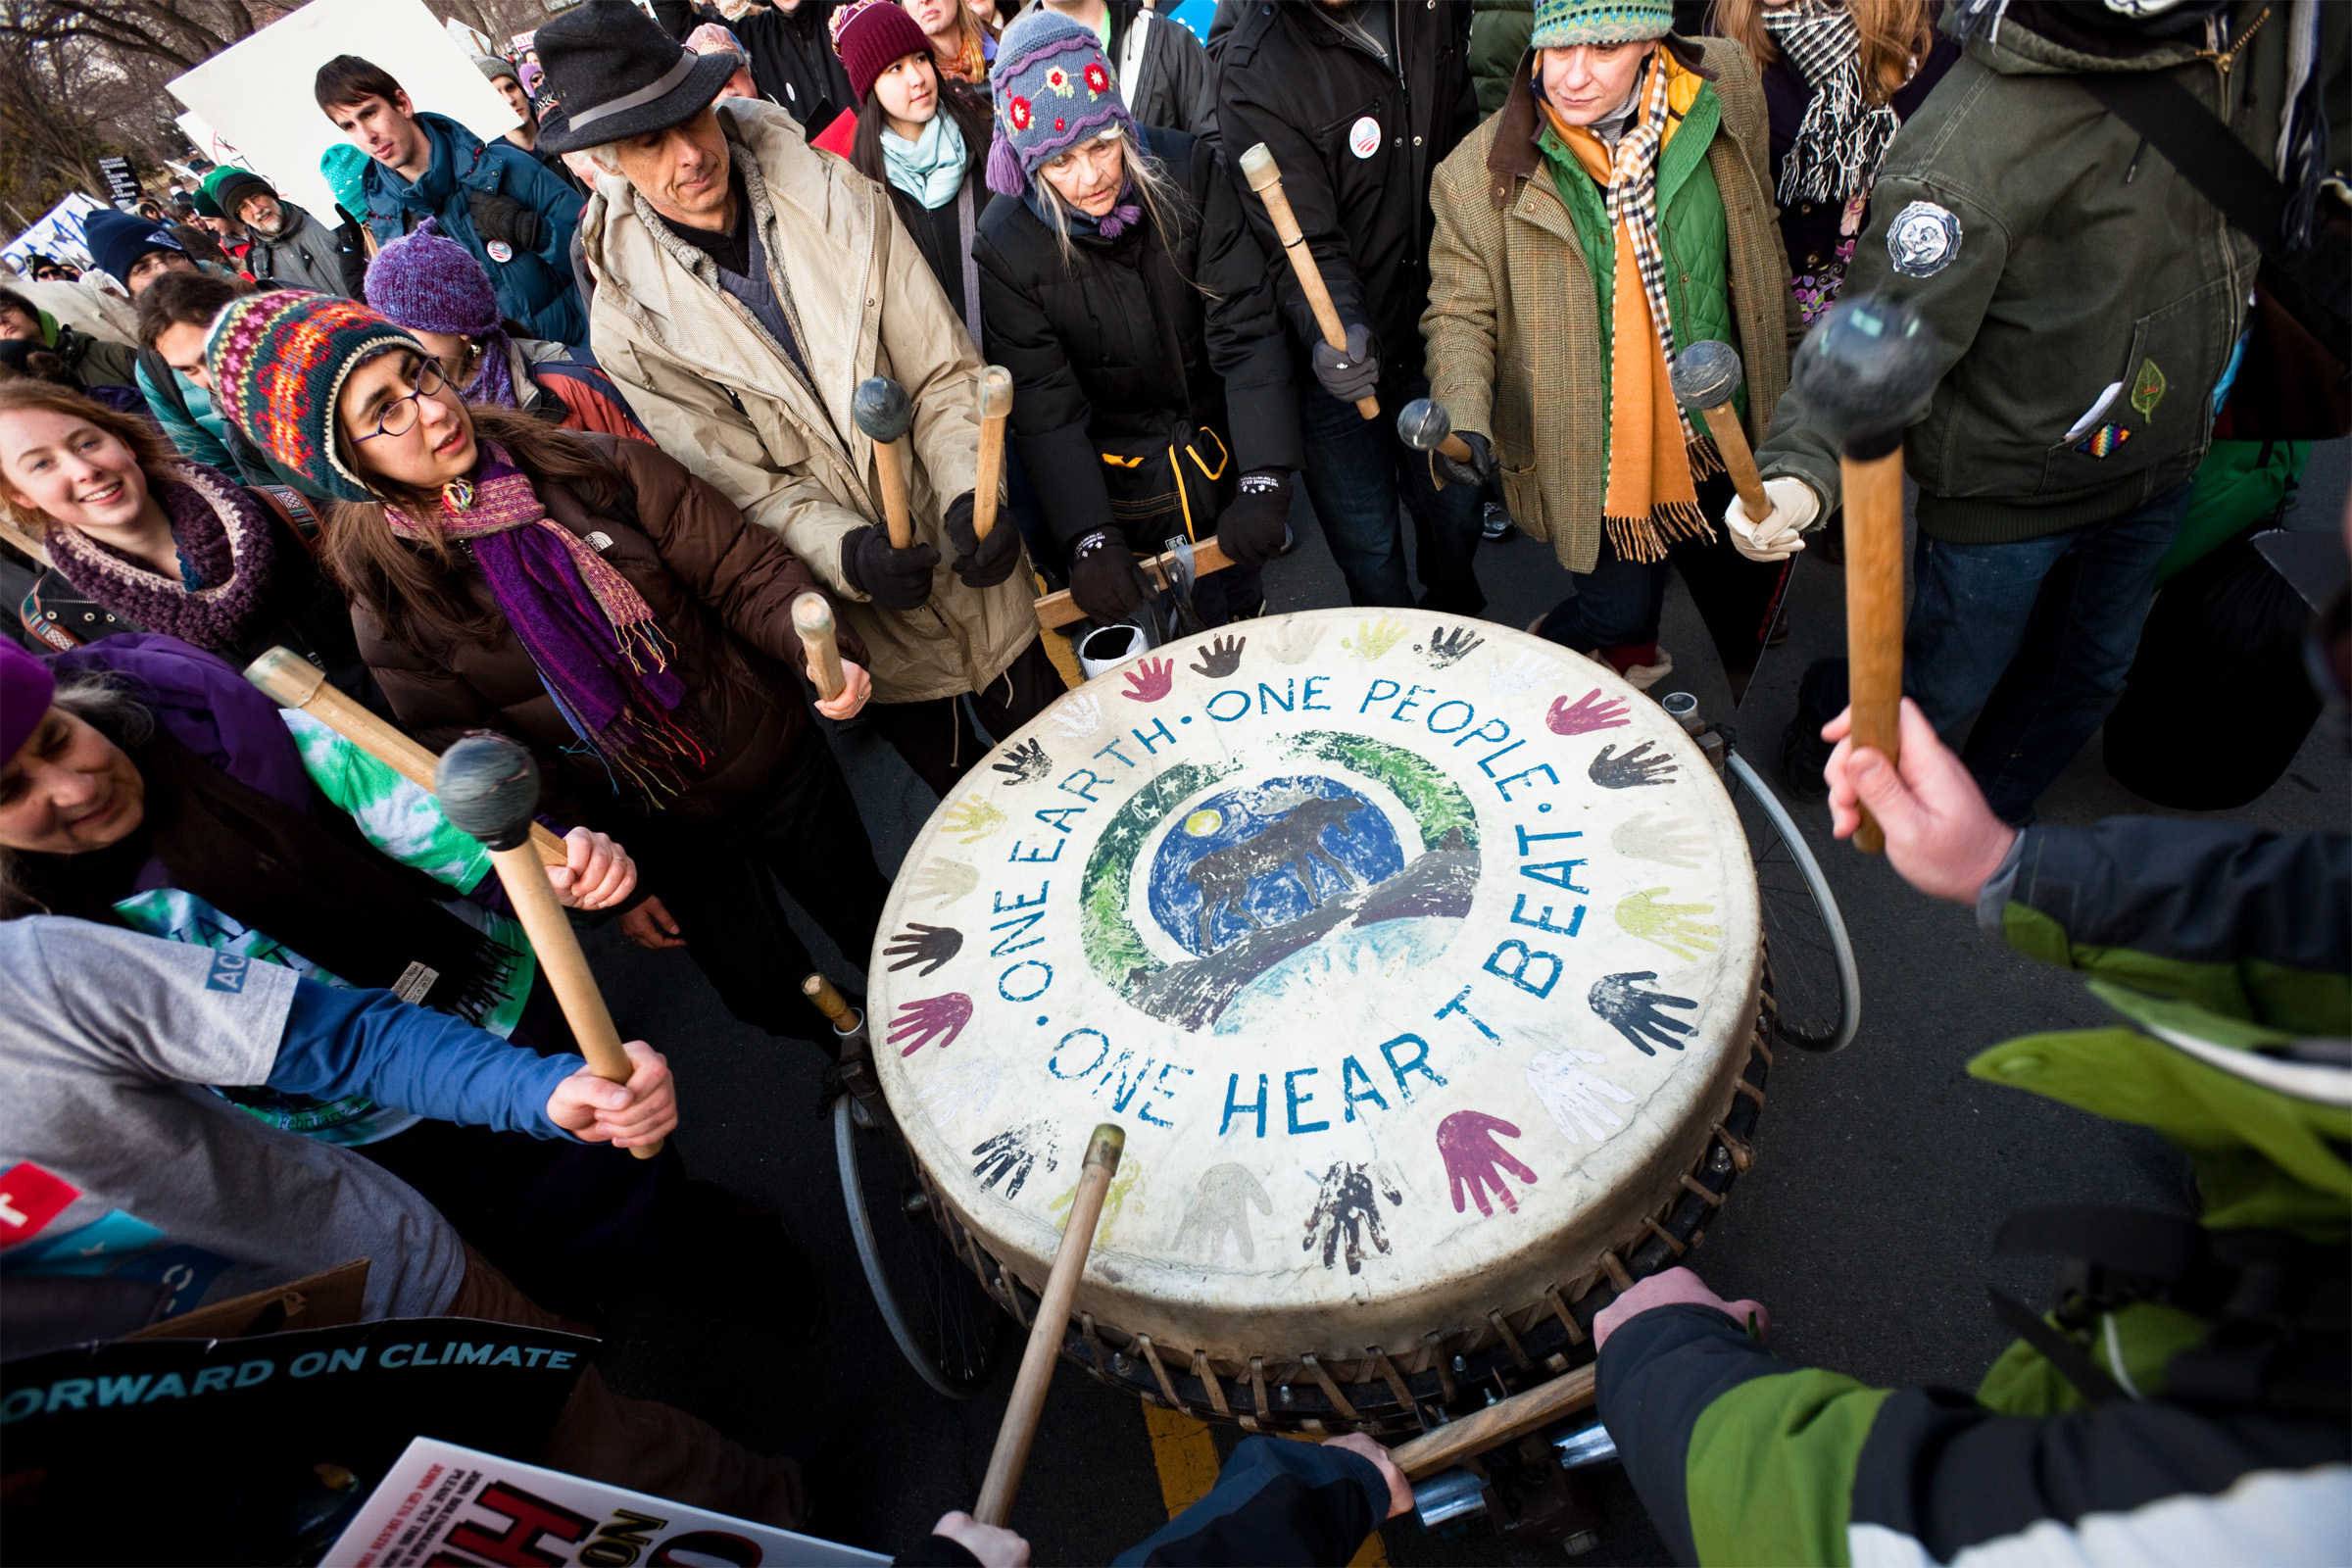 Marchers brought a variety of musical instruments to the Forward on Climate Rally, from harmonicas, trumpets and guitars to a communal drum pushed on a homemade dolly